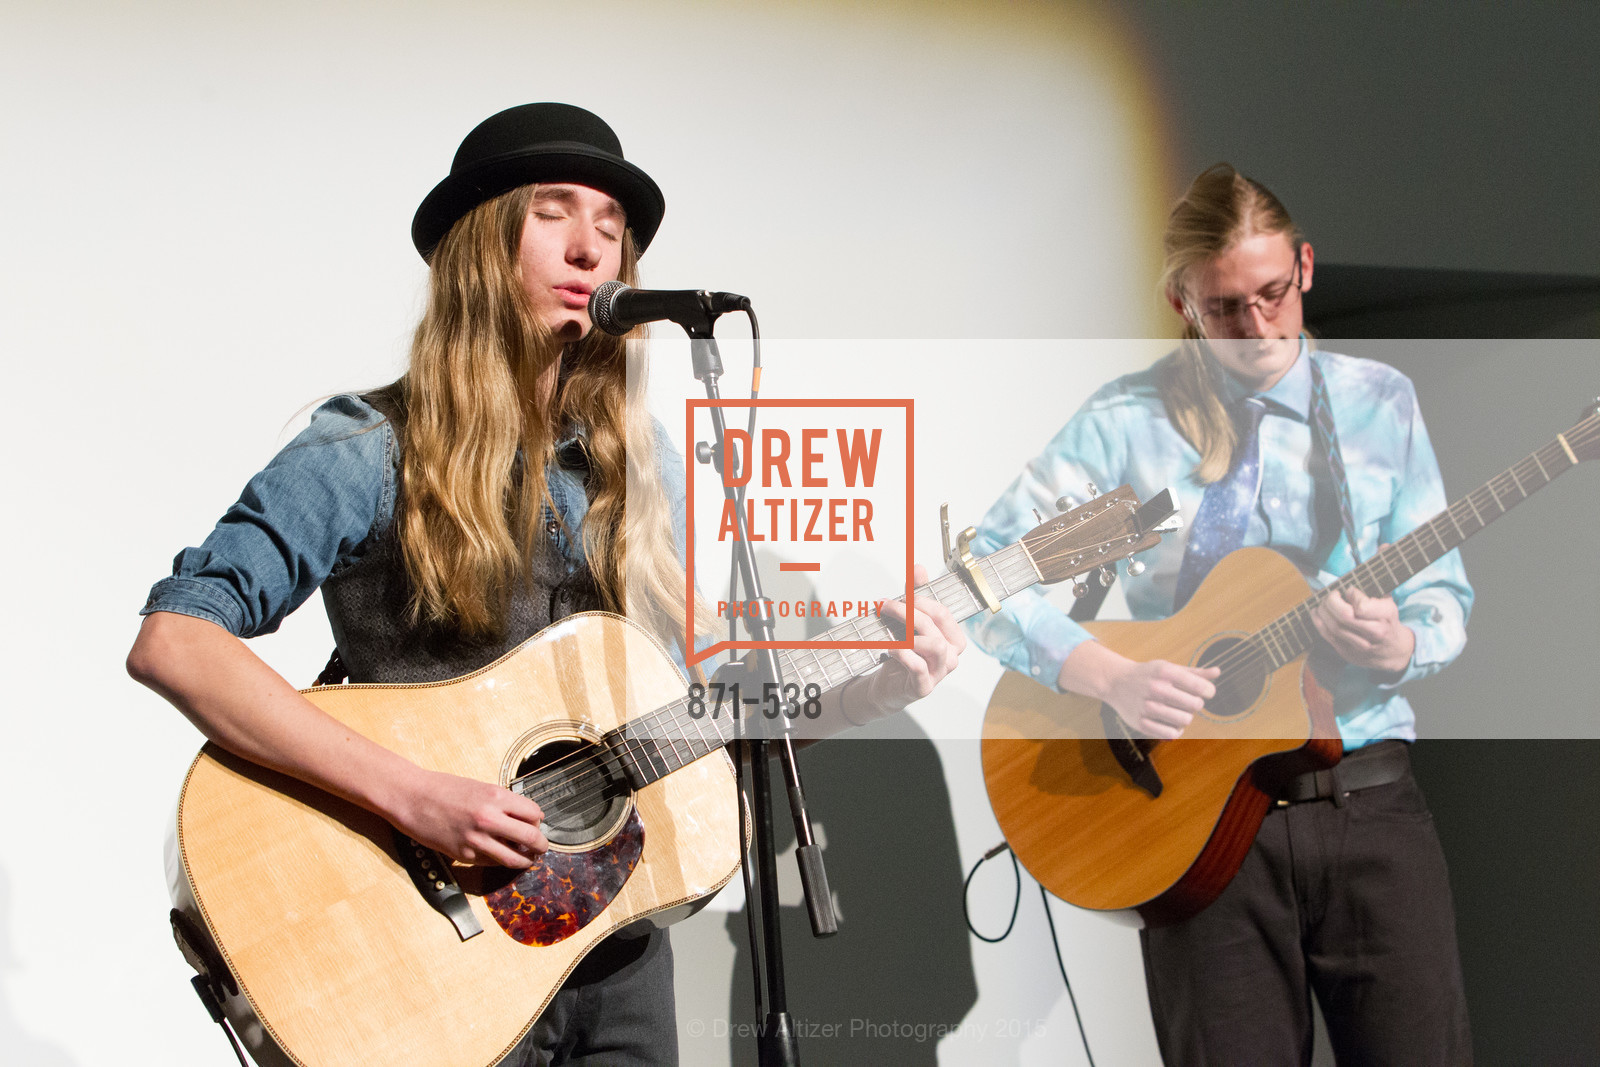 Performance, East Bay Innovation Forum, November 17th, 2015, Photo,Drew Altizer, Drew Altizer Photography, full-service agency, private events, San Francisco photographer, photographer california